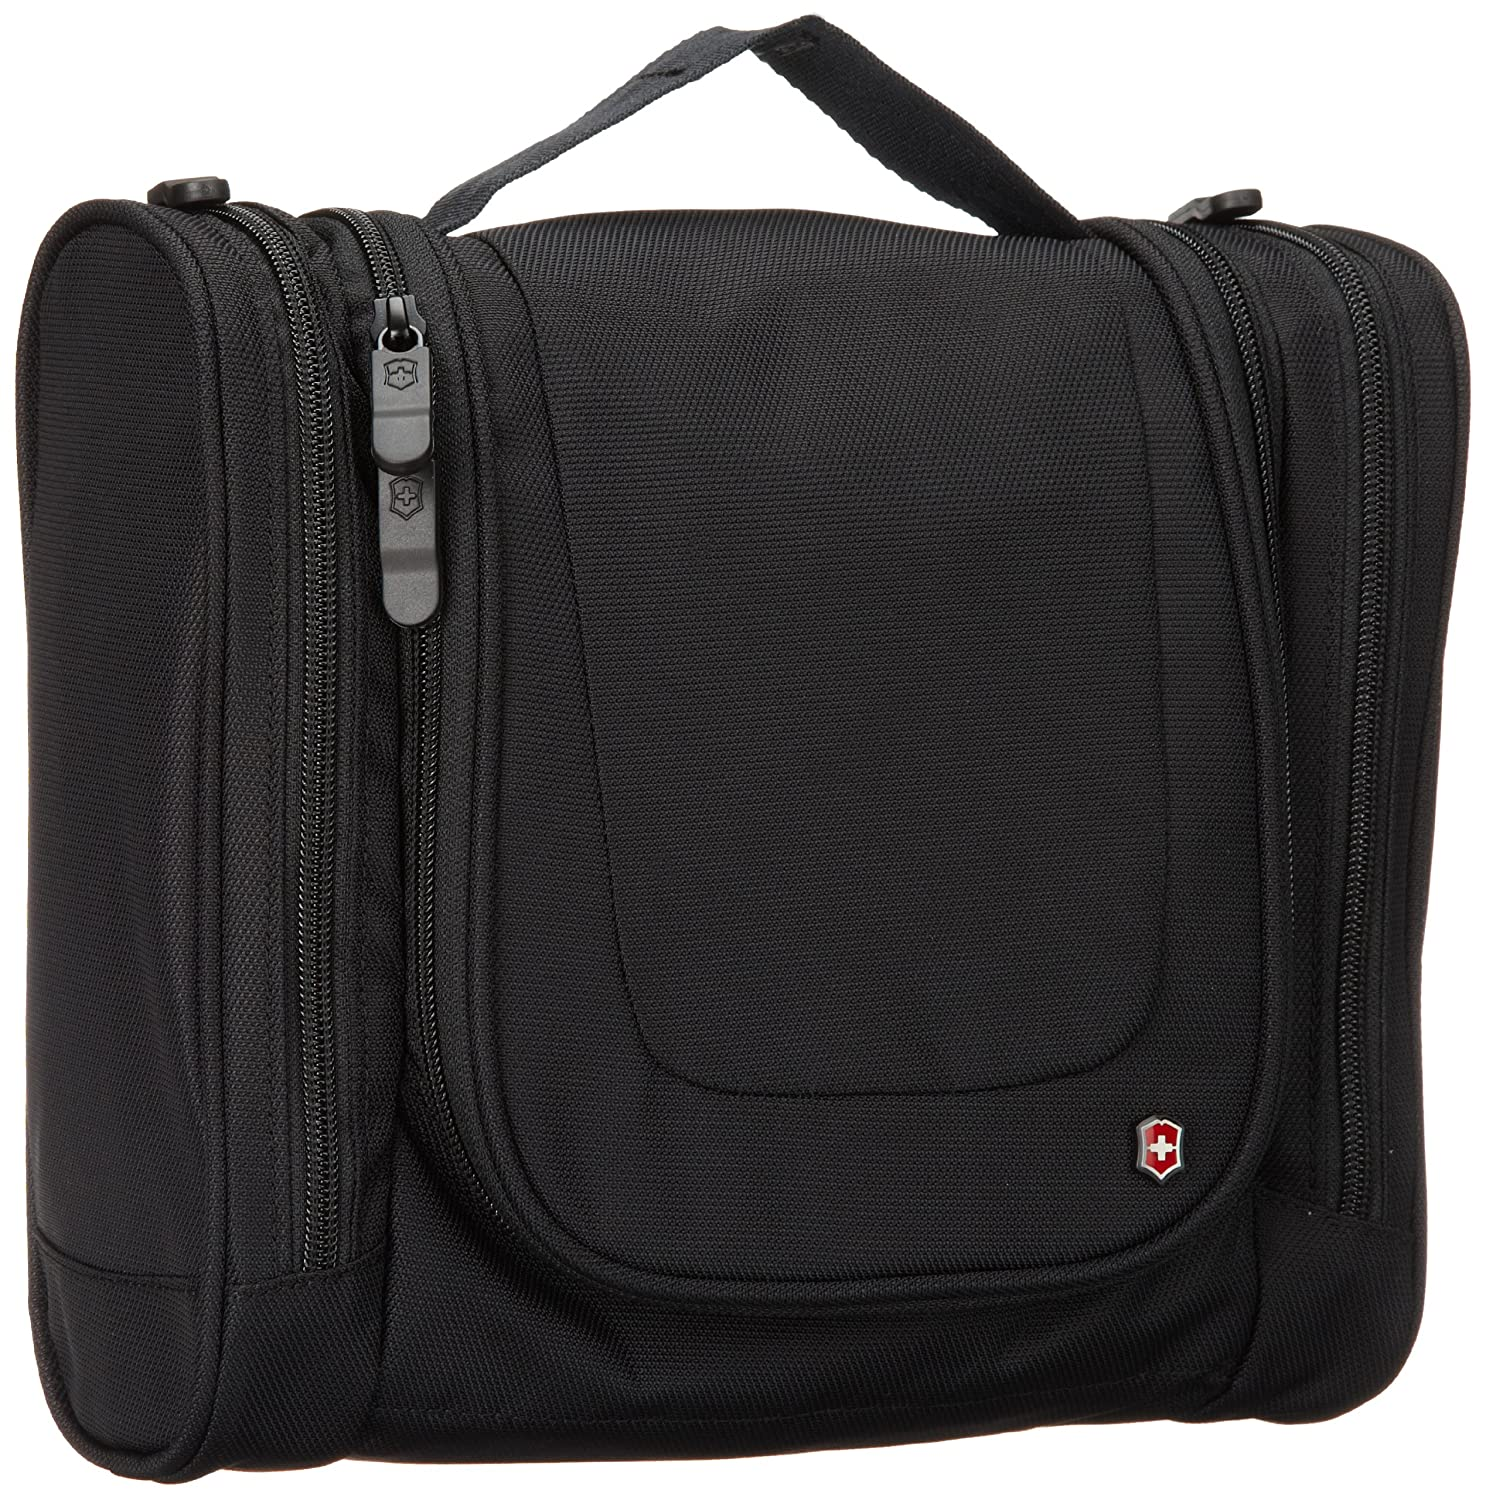 Victorinox Hanging Toiletry Kit, Black, One Size 30371101--One Size